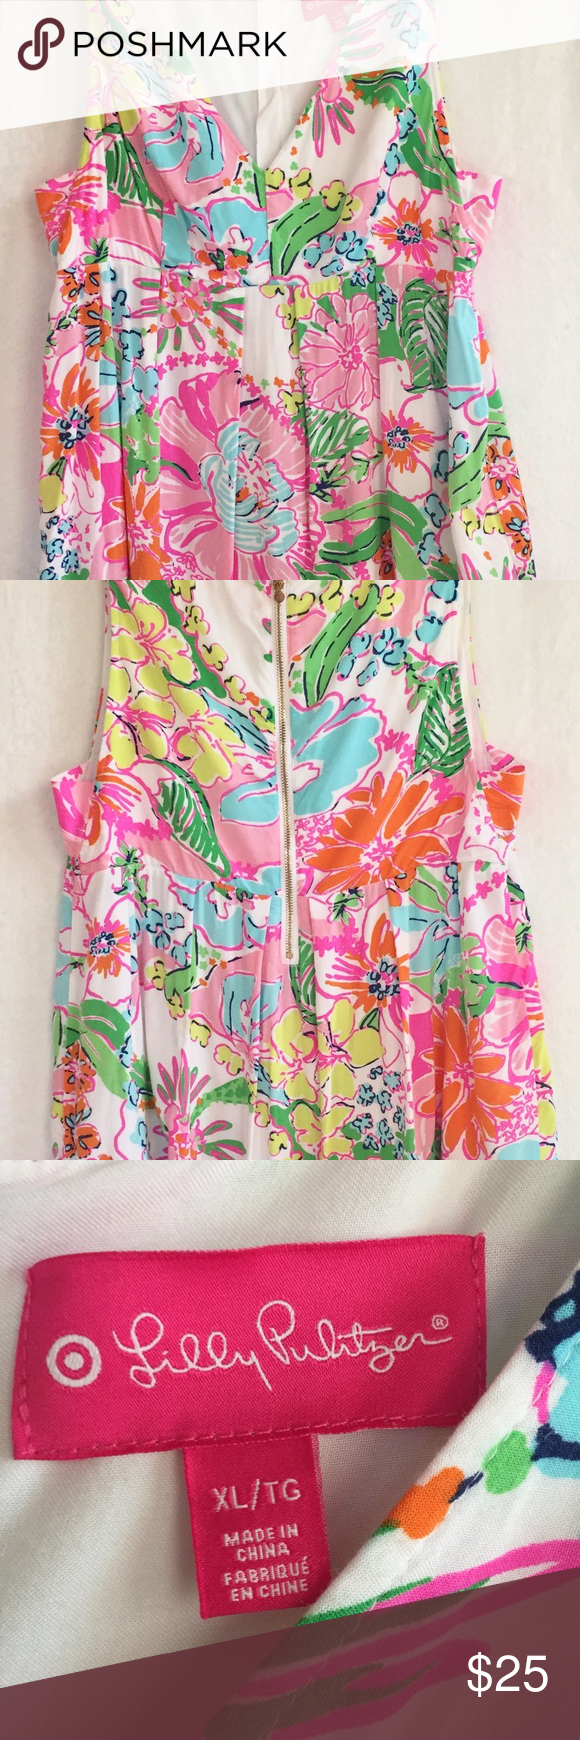 Lilly Pulitzer For Target Floral Dress Size Xl Beautiful Strapless Floral Dress From Lilly P Tropical Floral Print Lilly Pulitzer Target Strapless Floral Dress [ 1740 x 580 Pixel ]